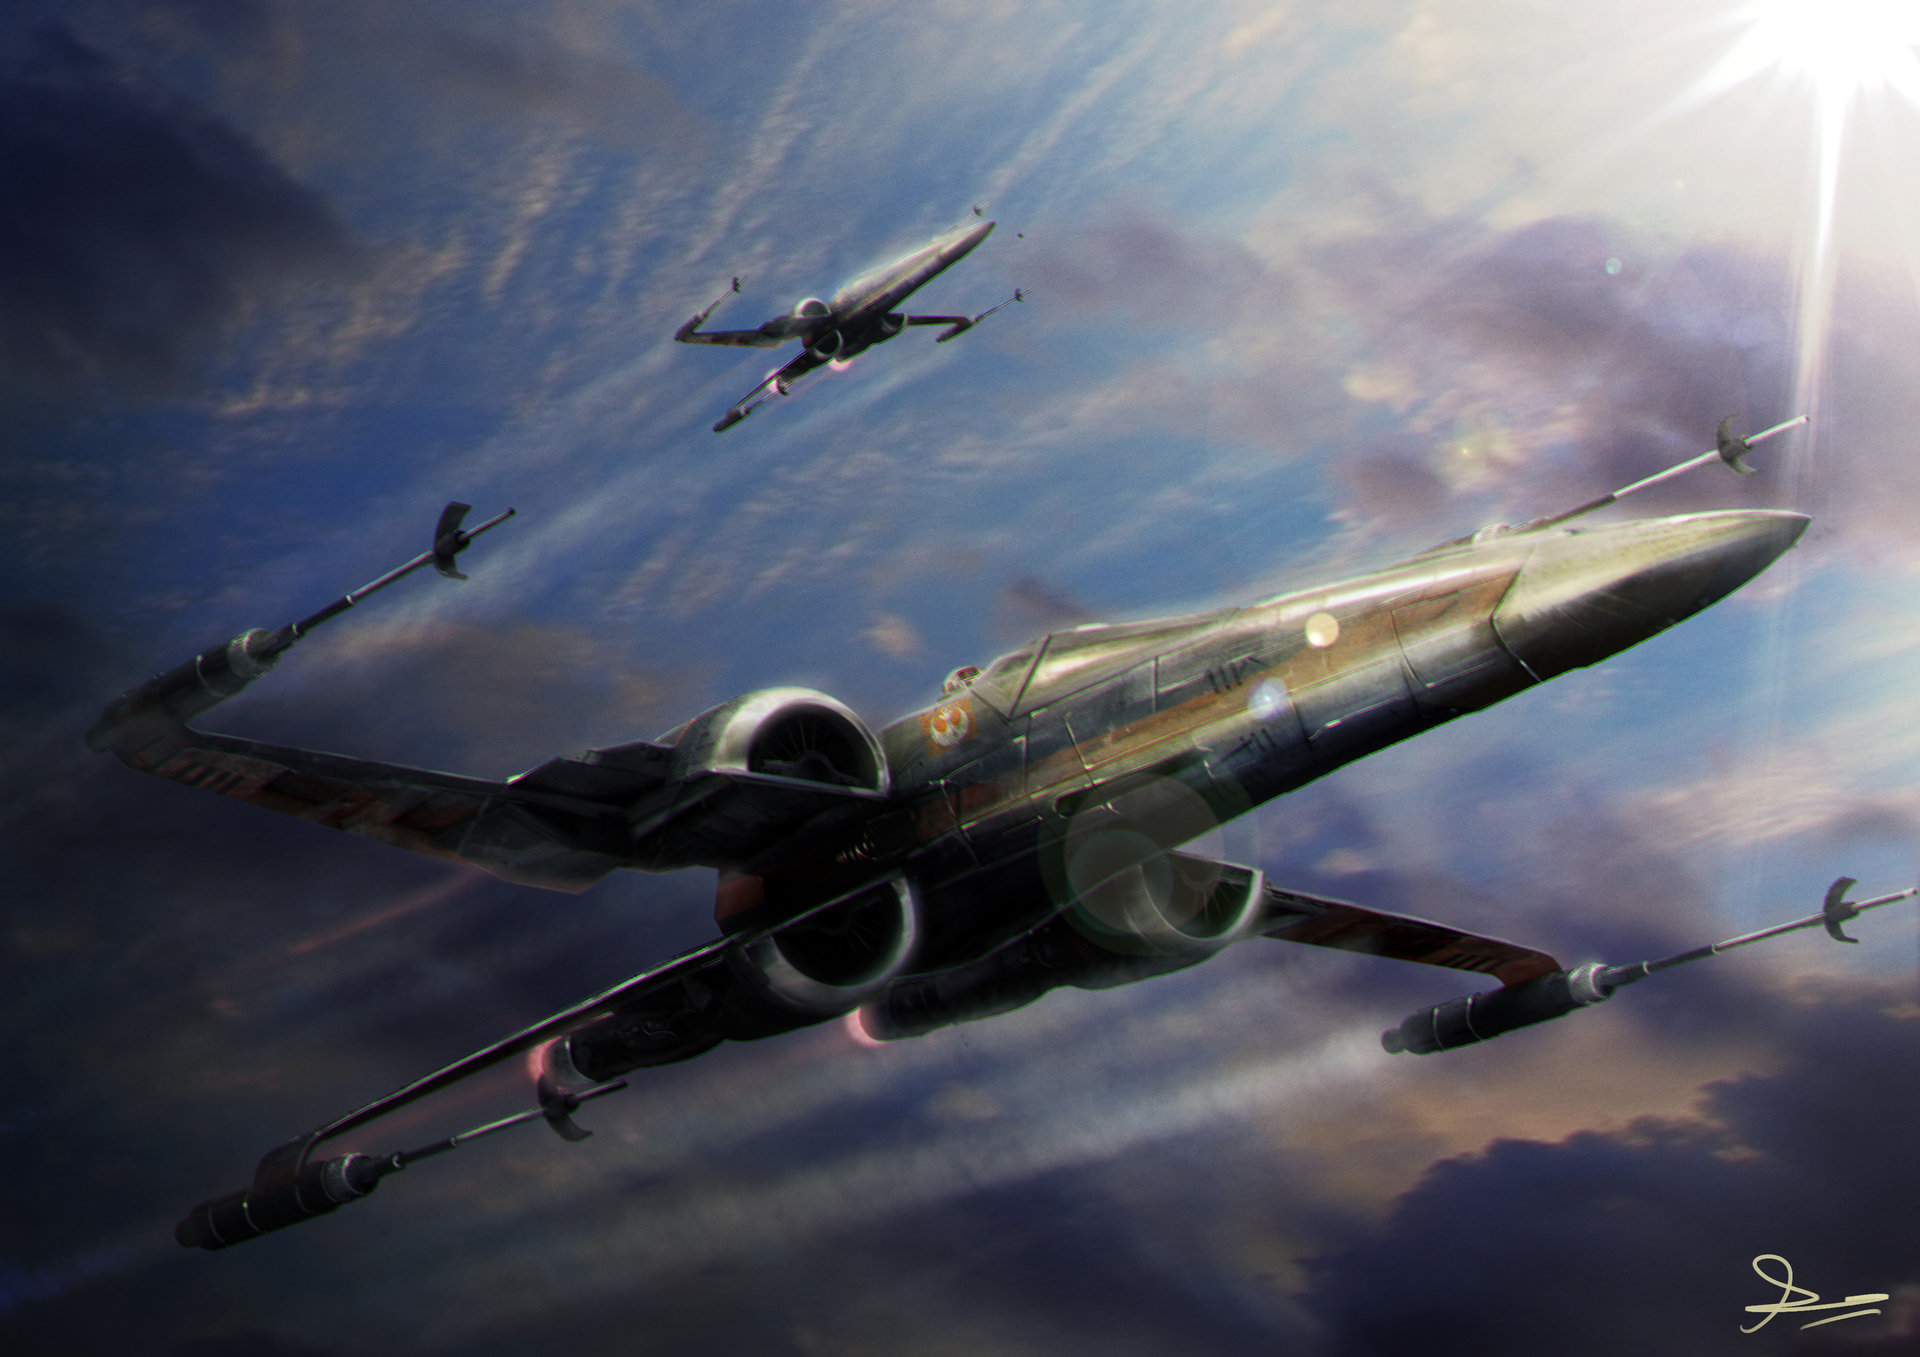 20 hd star wars wallpapers to channel your inner fanboy